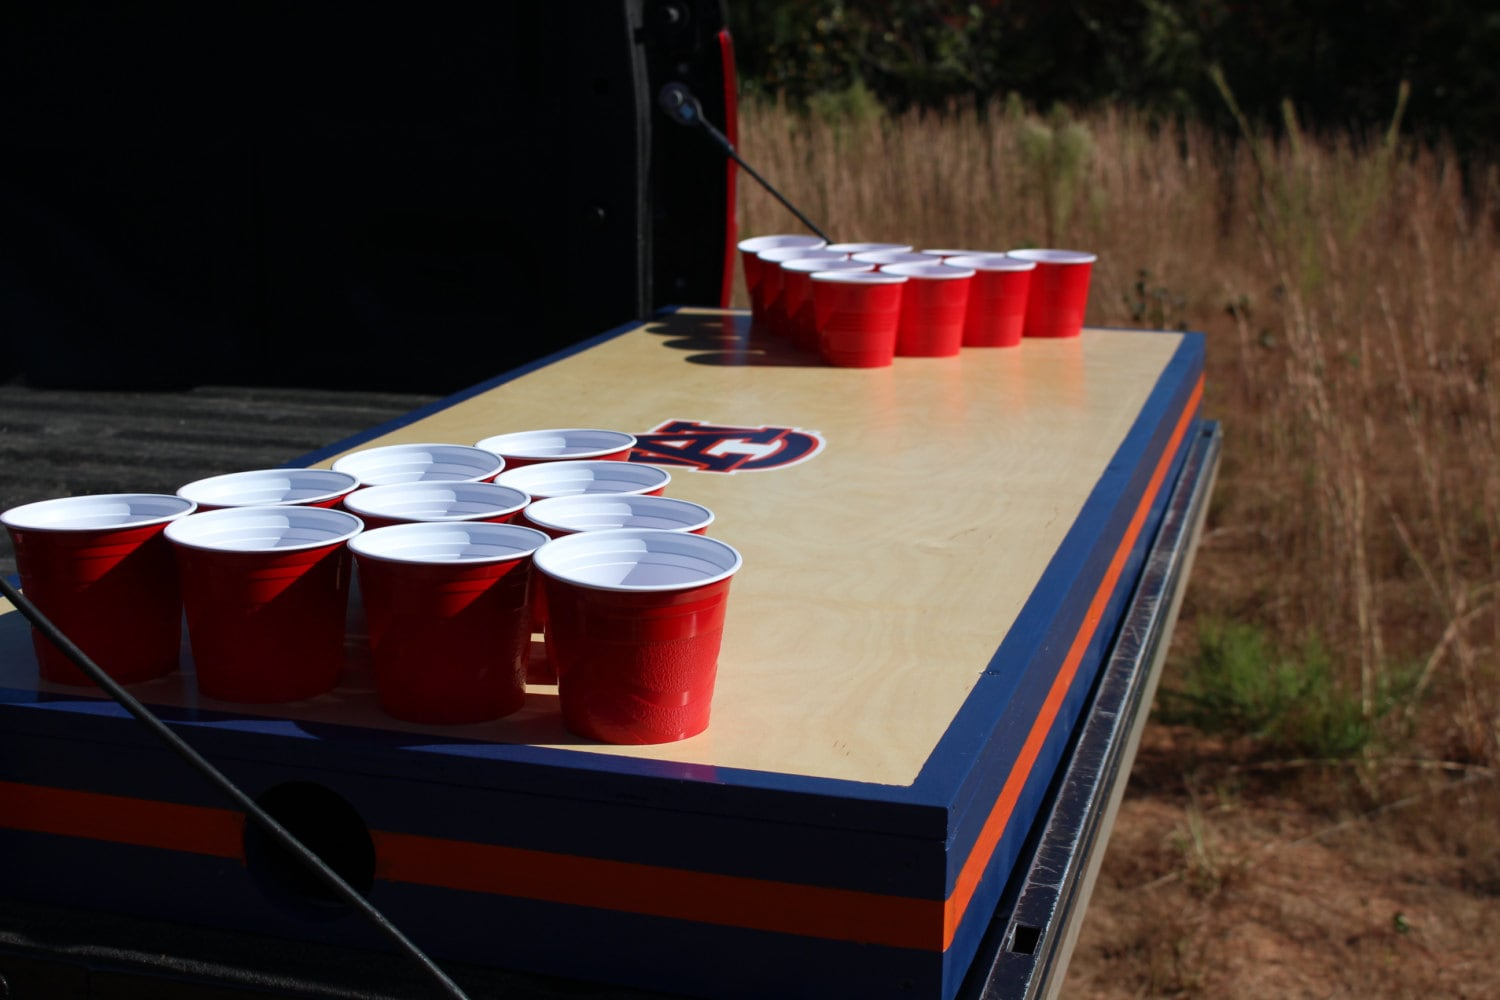 Hockey beer pong table - Truck Bed Beer Pong Table